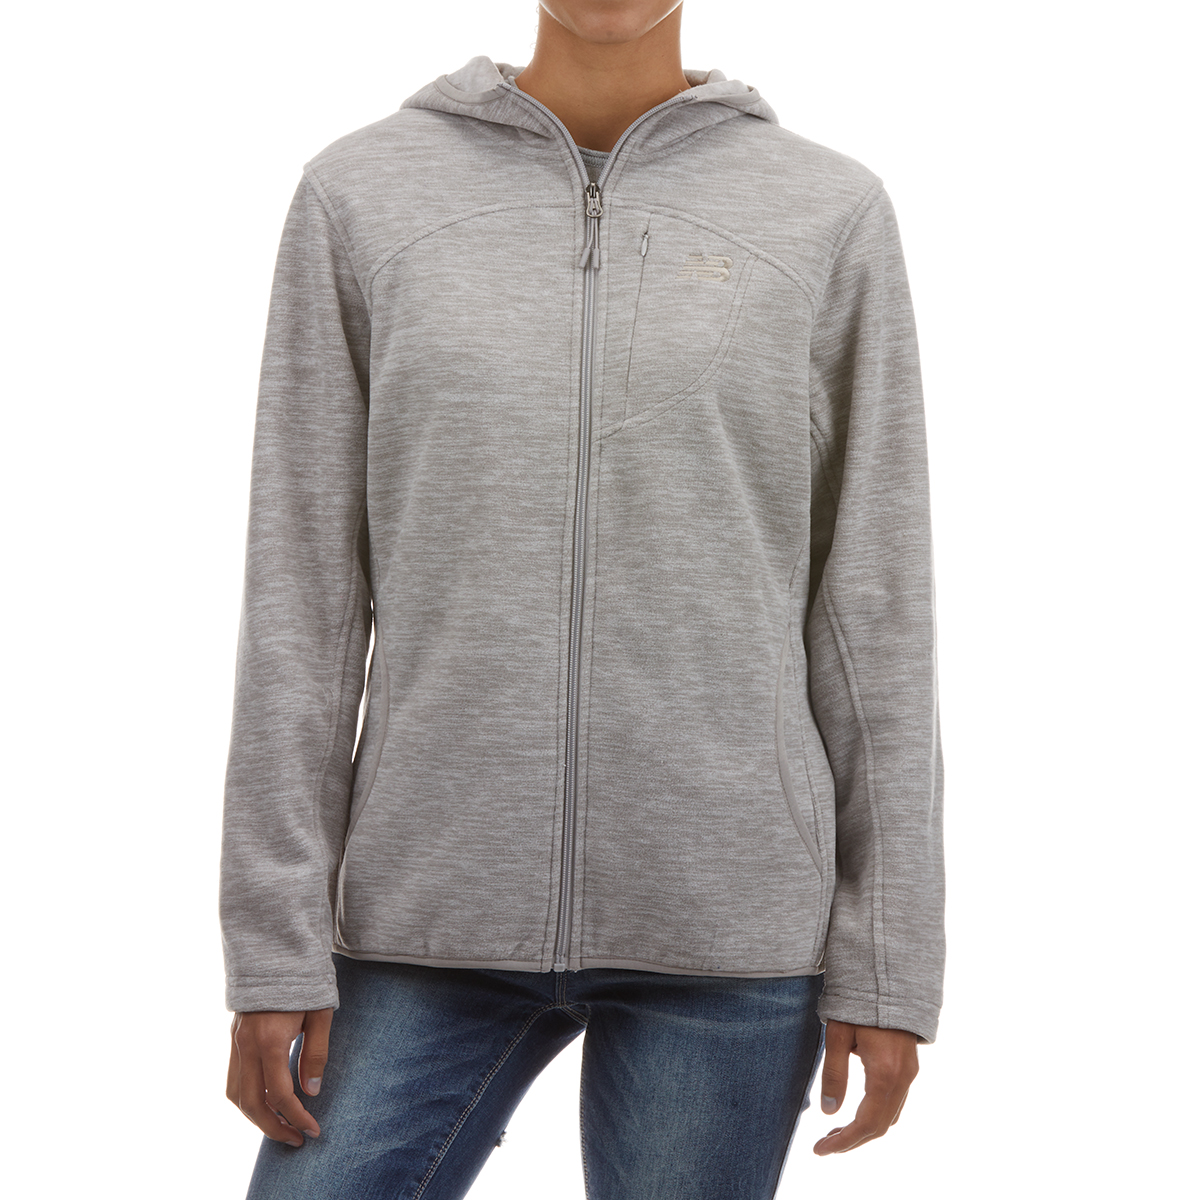 New Balance Women's Full Zip Polar Fleece Spacedye Hoodie - White, S